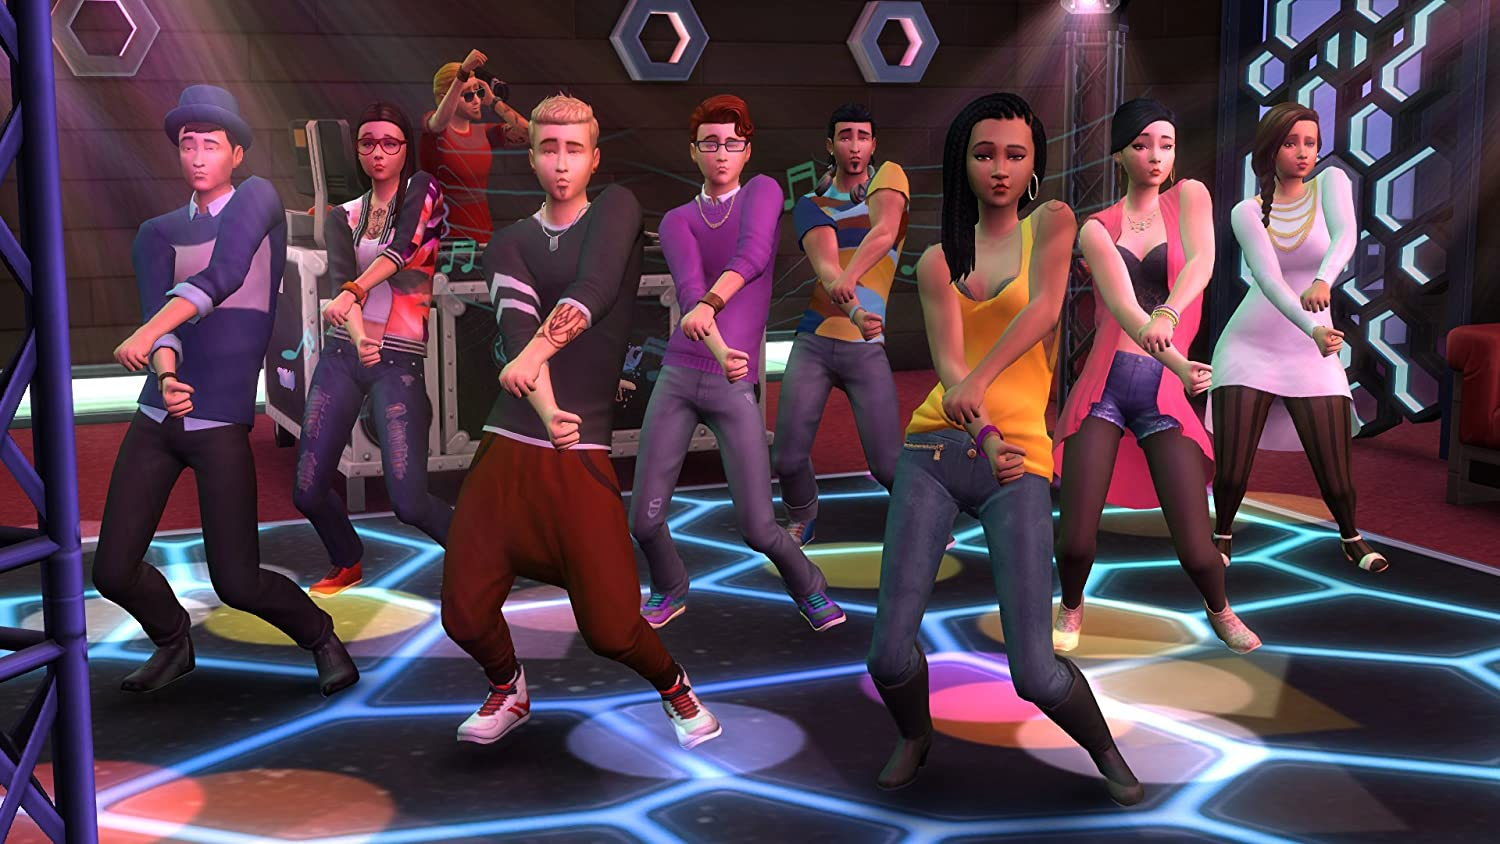 Amazon.com: The Sims 4 Get Together - PC: Video Games